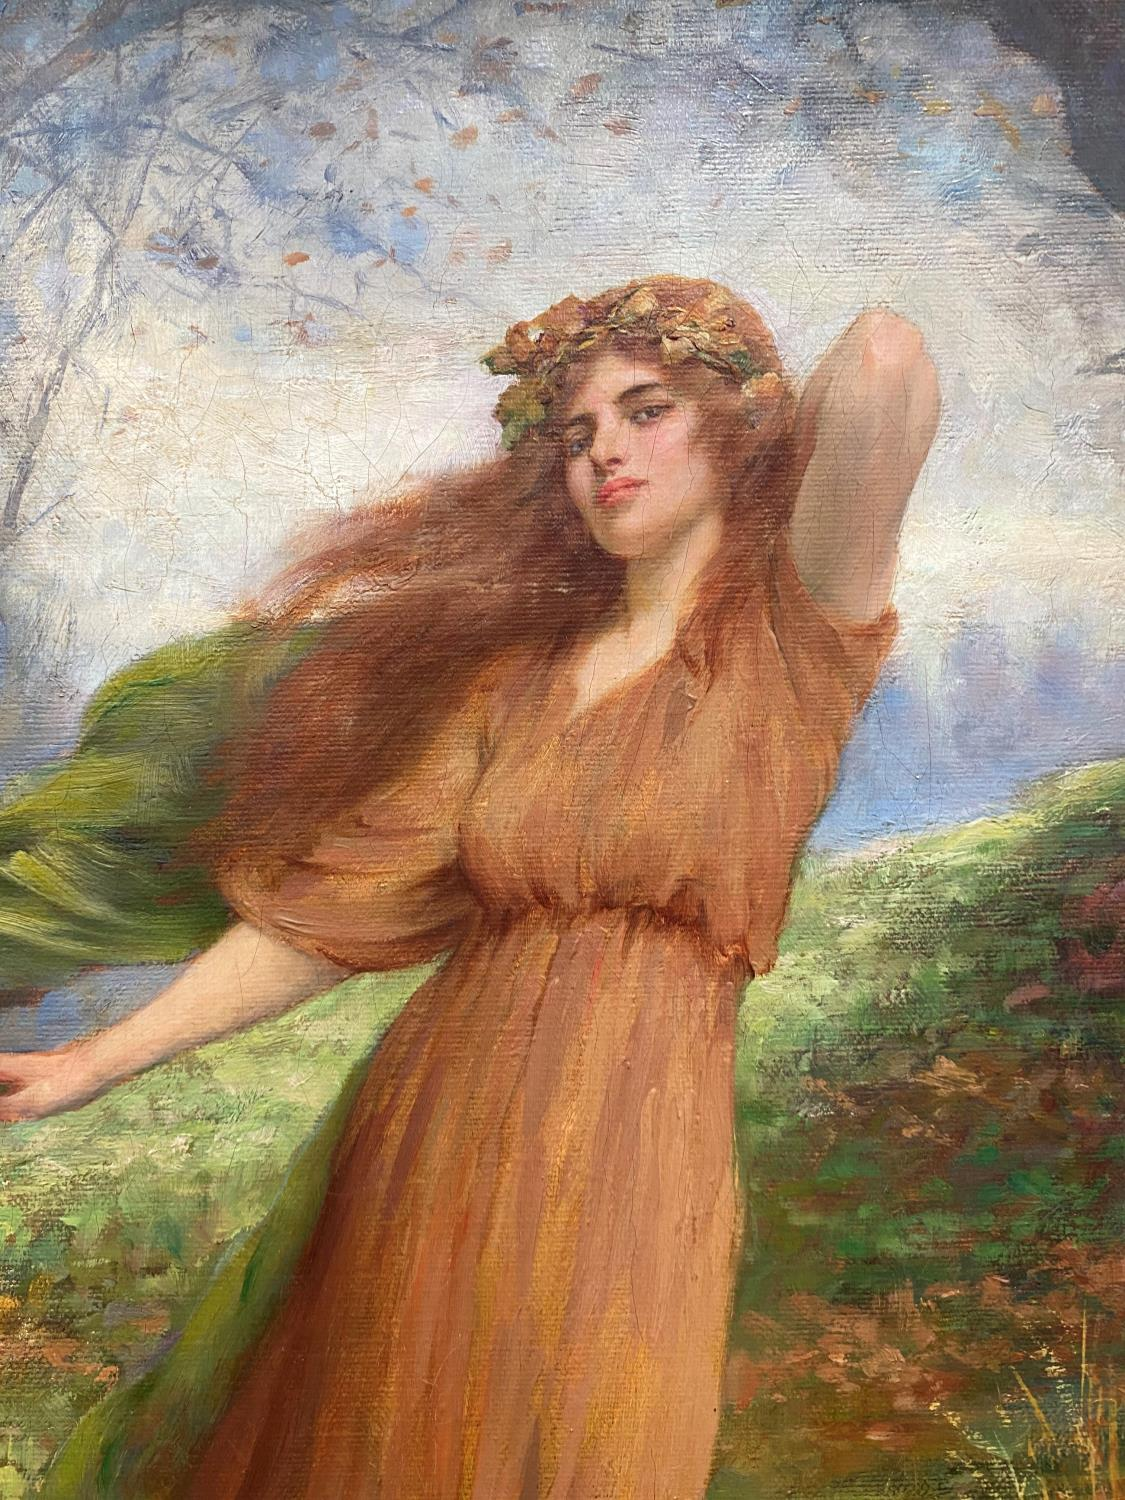 William Breakspeare (British 19th Century): oil on canvas, pre-Raphaelite portrayal of a young woman - Image 2 of 7